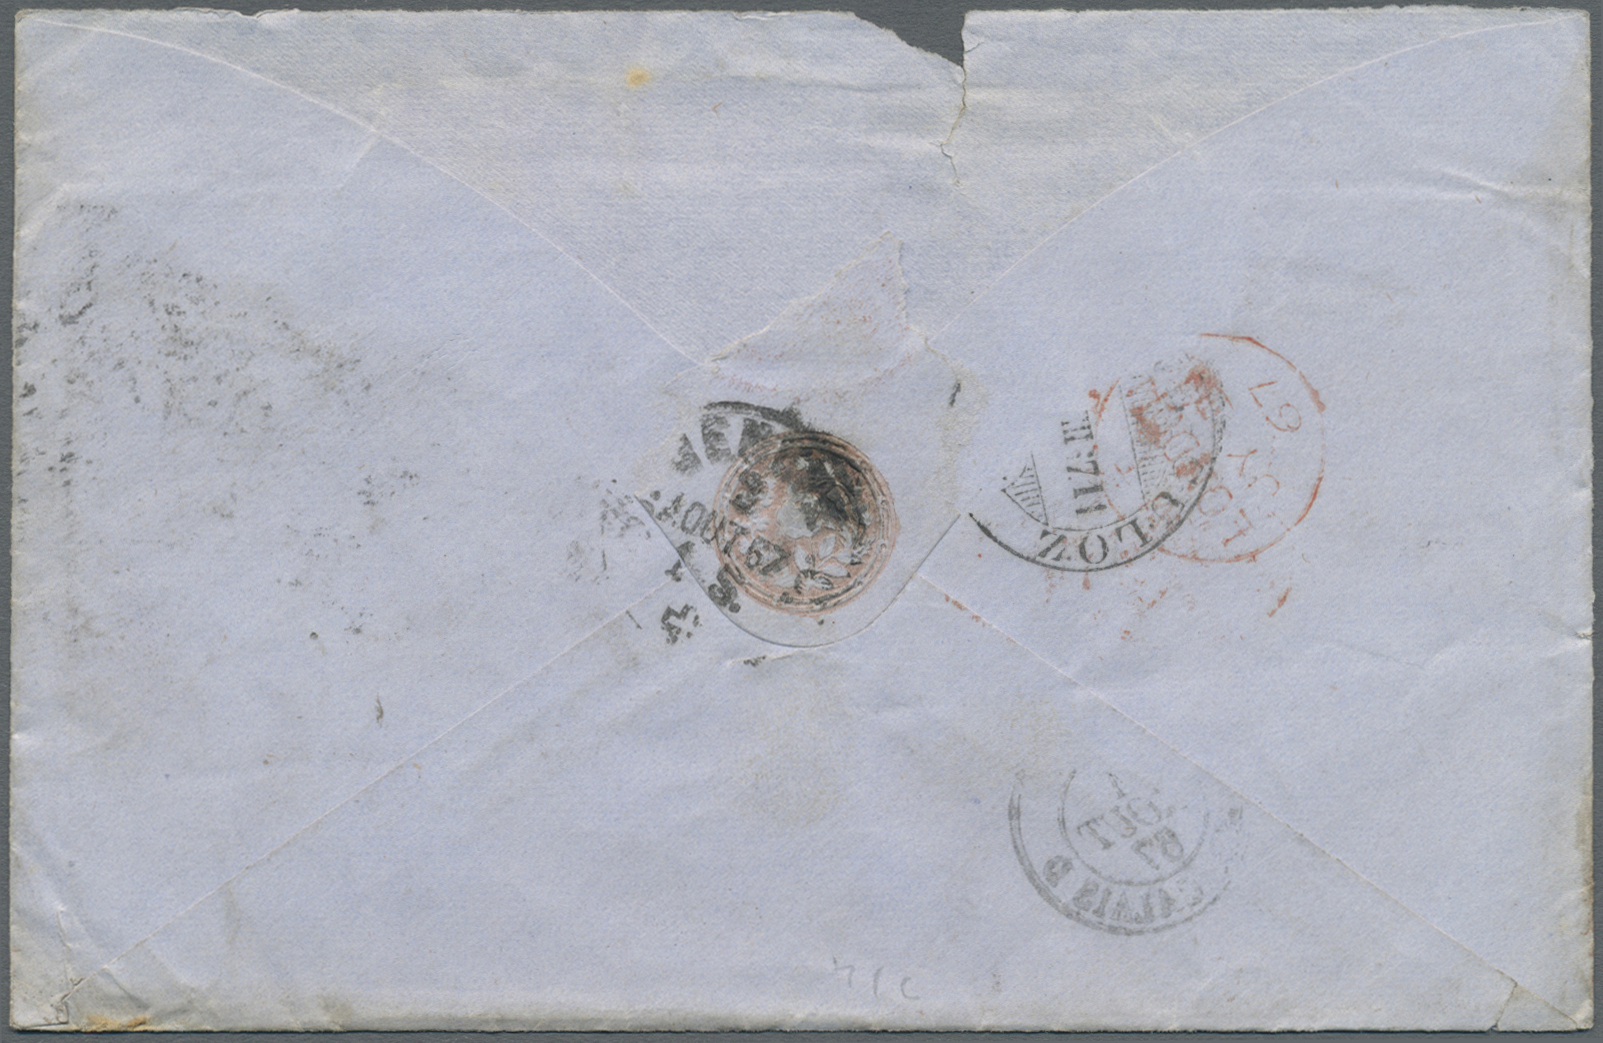 Lot 16839 - irland  -  Auktionshaus Christoph Gärtner GmbH & Co. KG Single lots Philately Overseas & Europe. Auction #39 Day 4